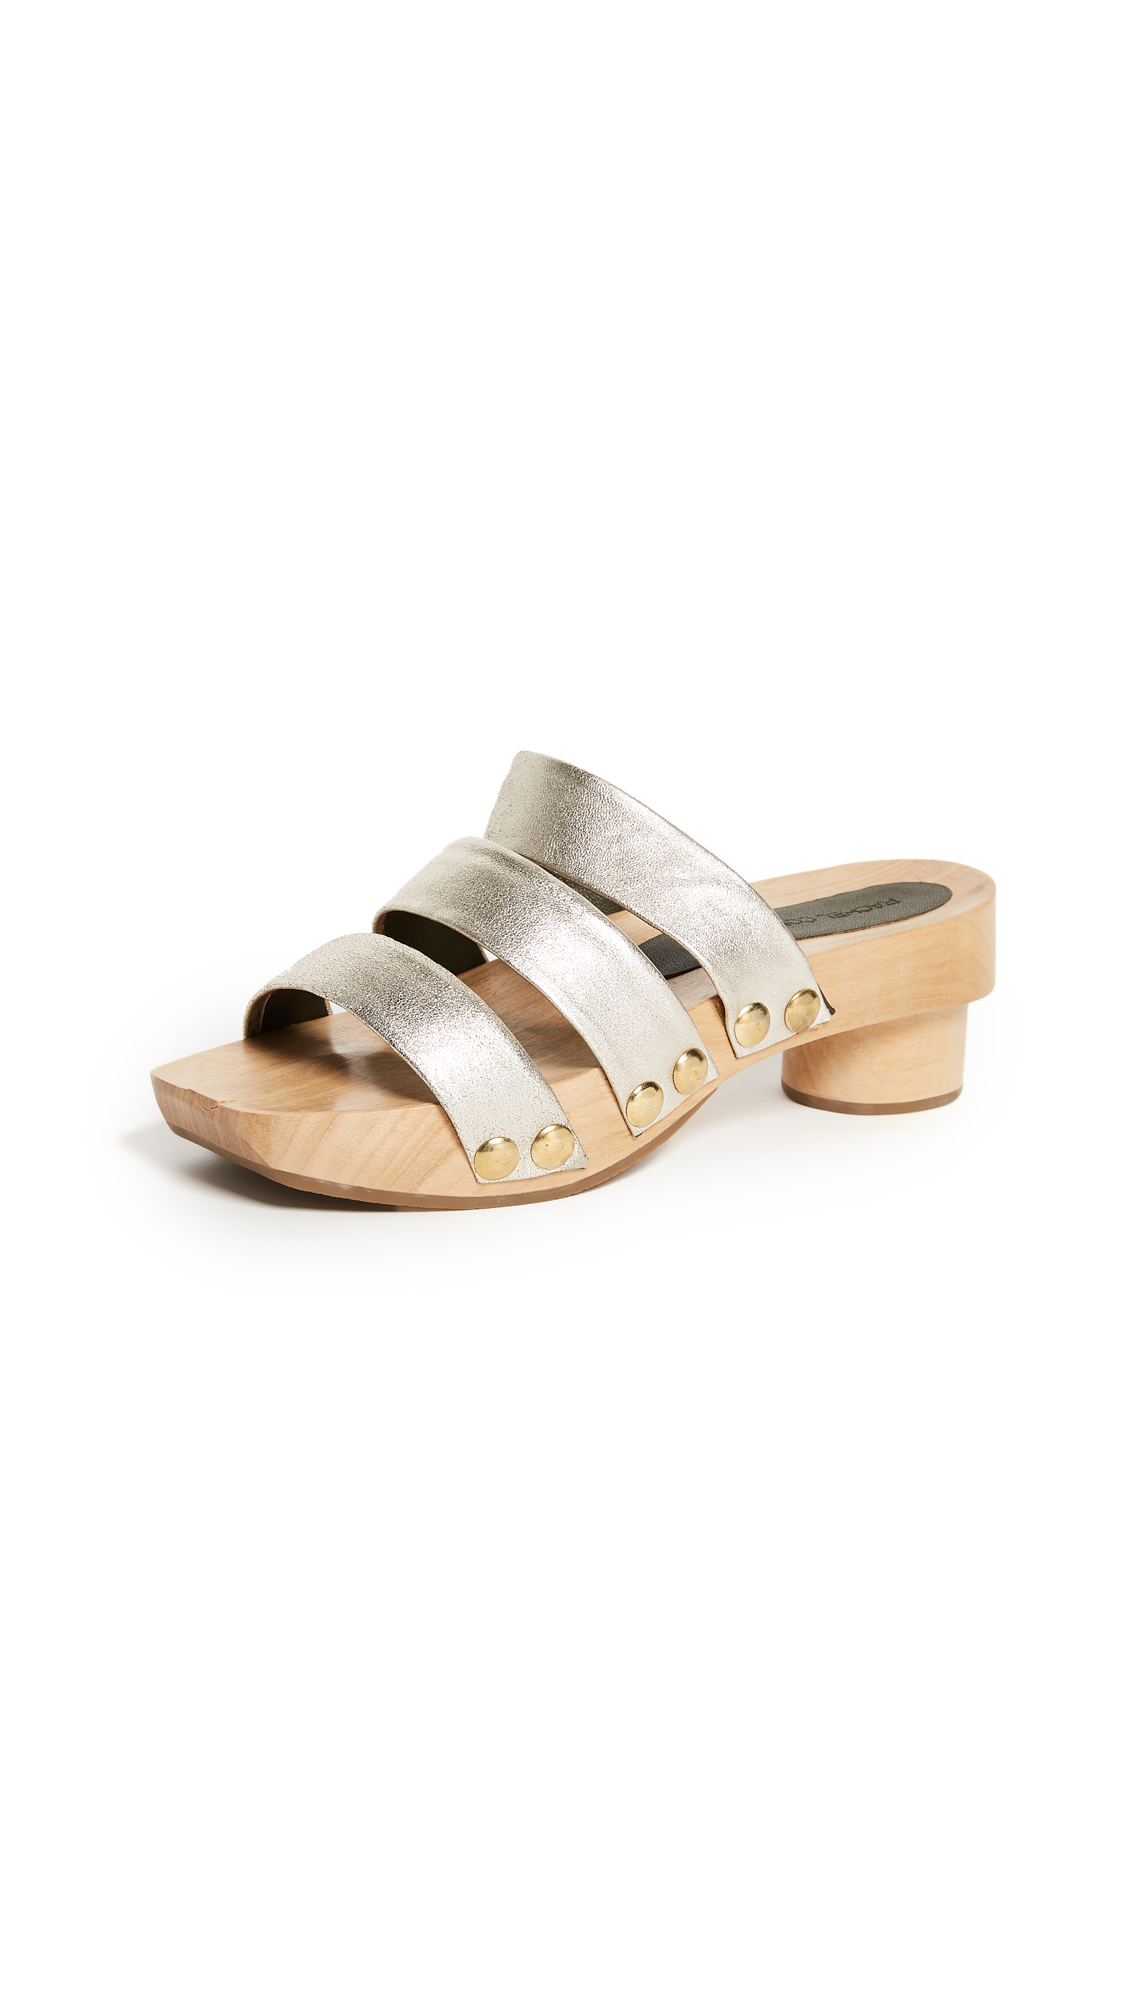 Rachel Comey Camus Clog City Slides - White Gold